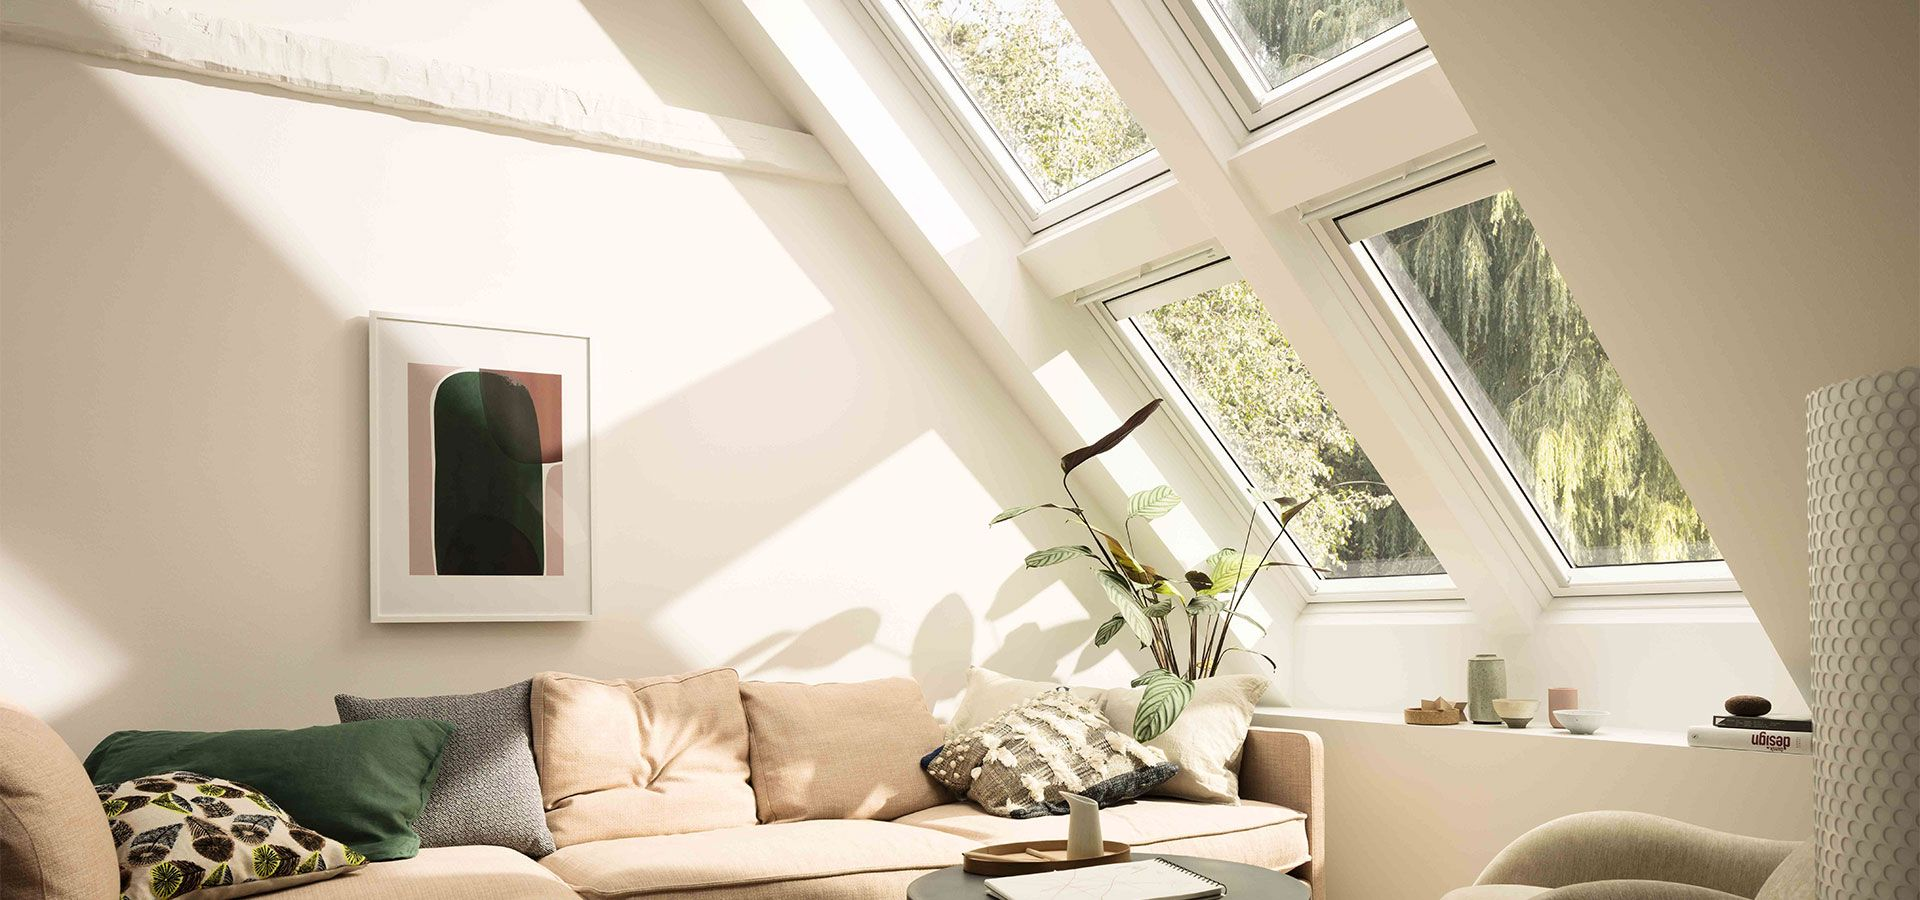 Nouvelle fen tre velux finition white finish pour plus de for Fenetre velux